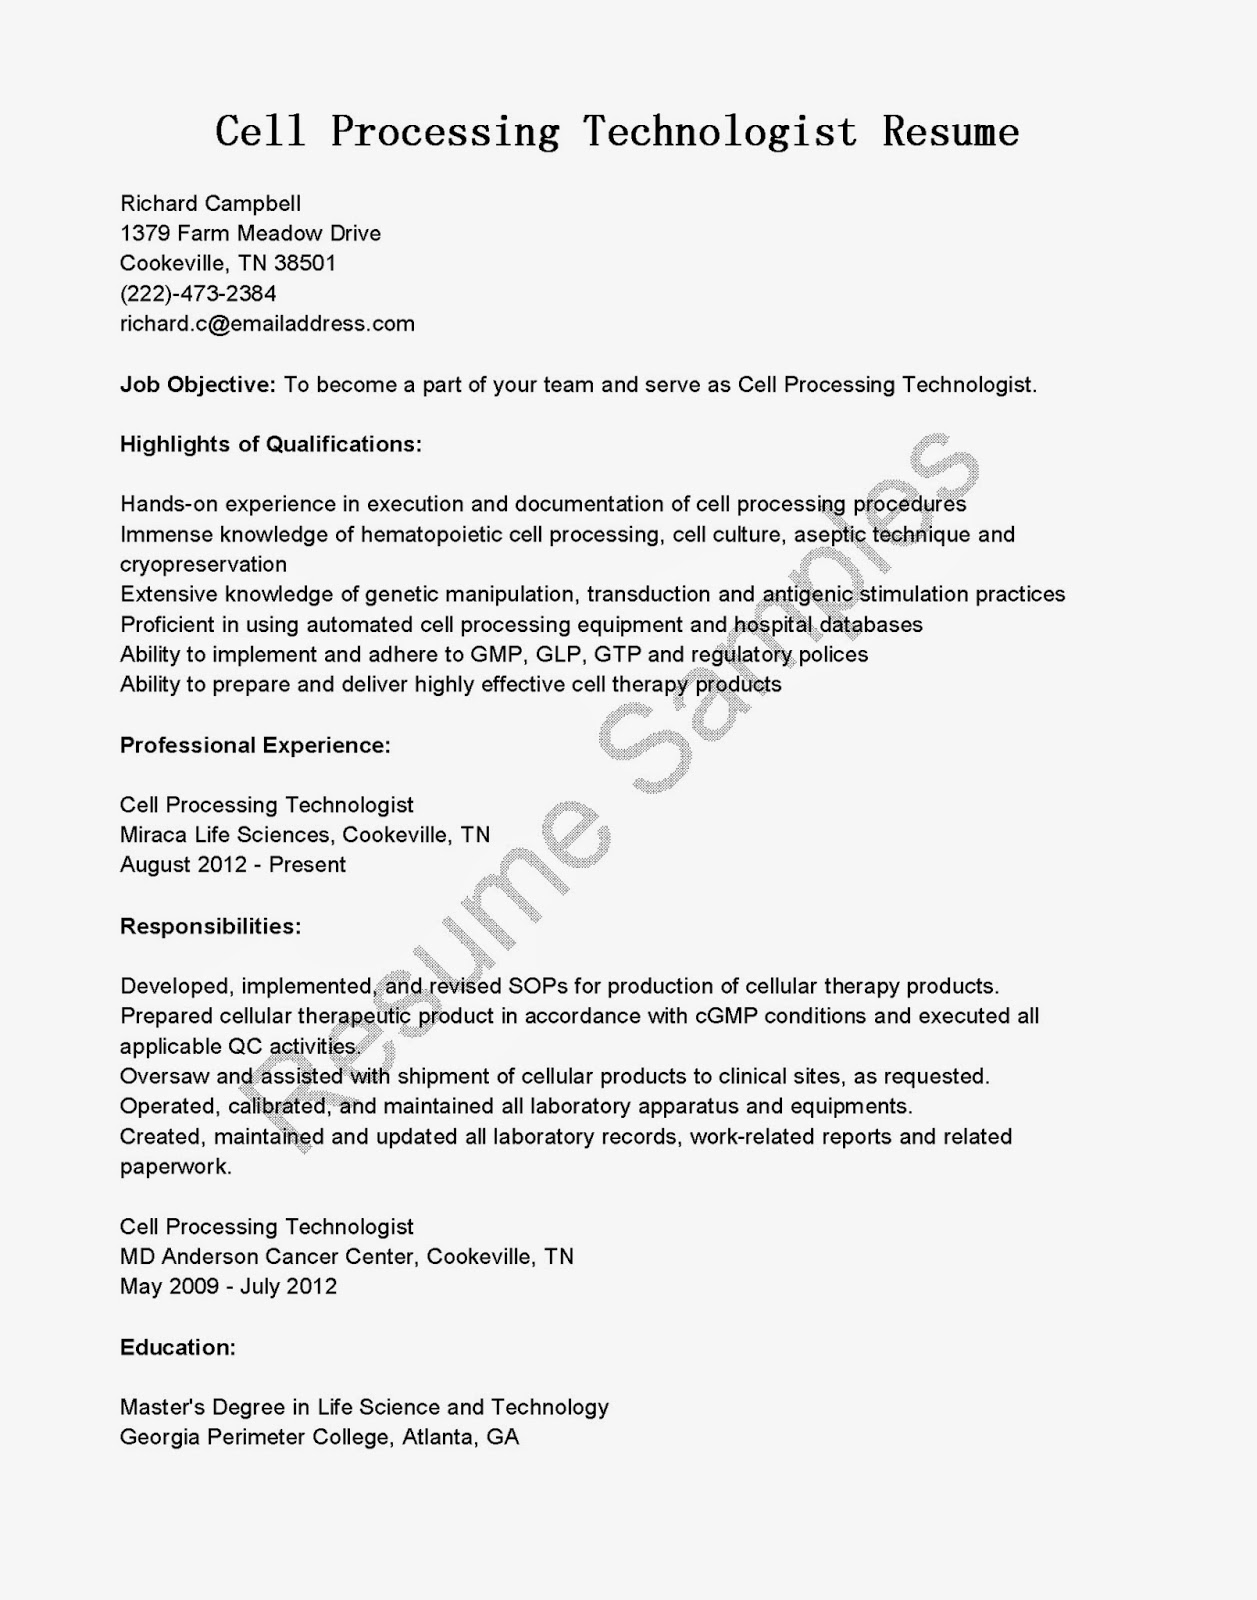 resume samples  cell processing technologist resume sample